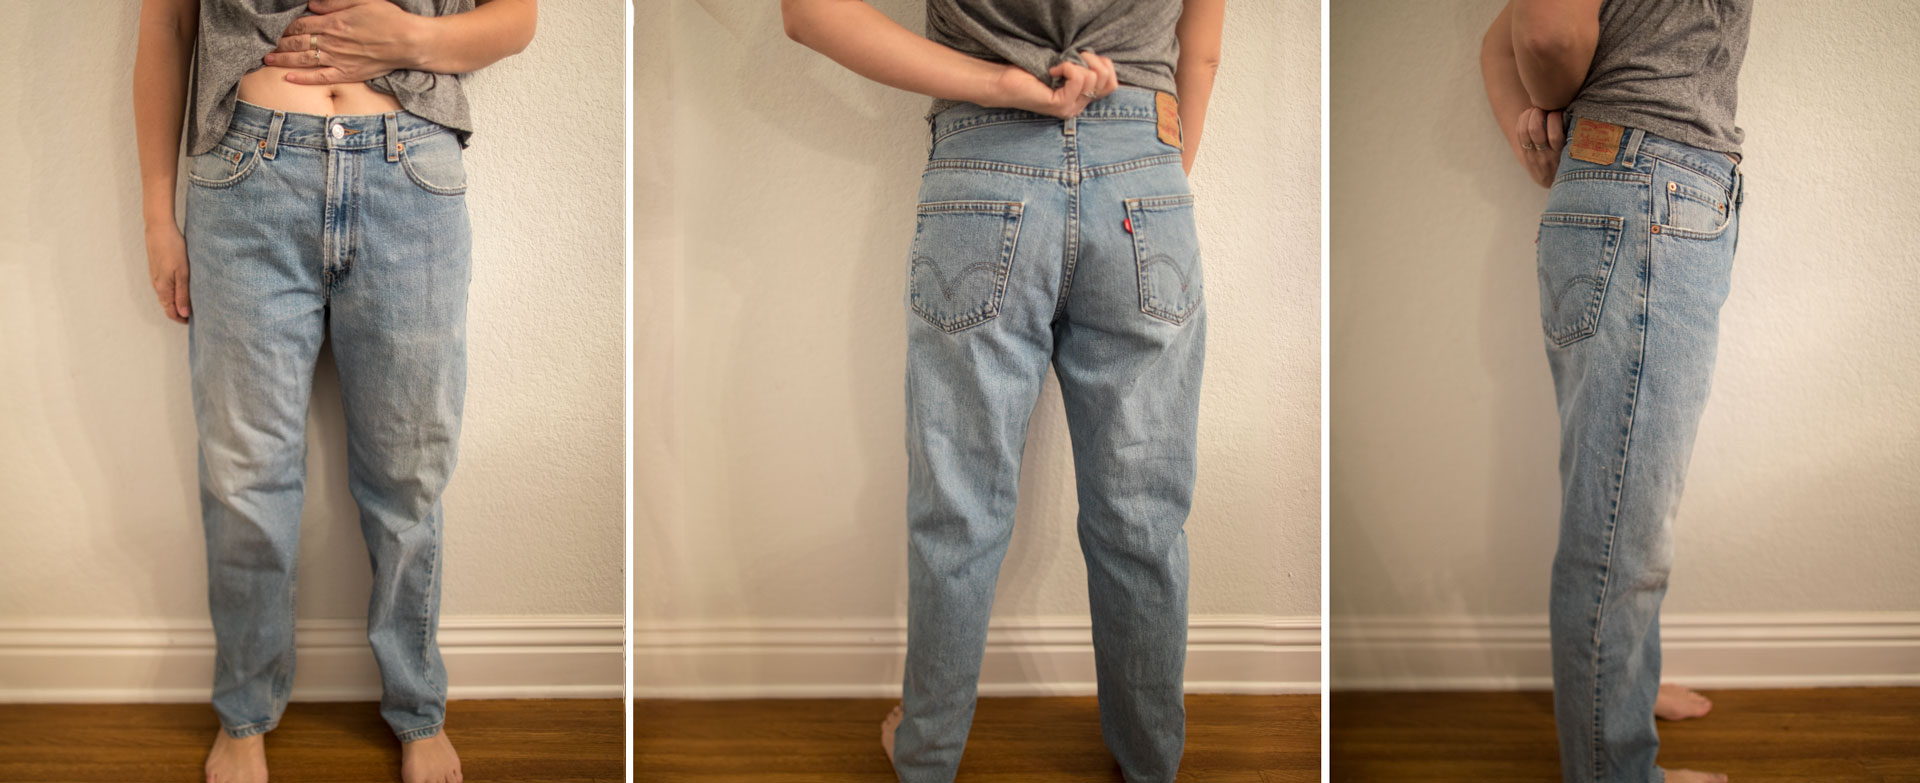 62615a727e590e The This Fit Guide JeansVintage Right Mom s Finding Levi s gfb6vY7y